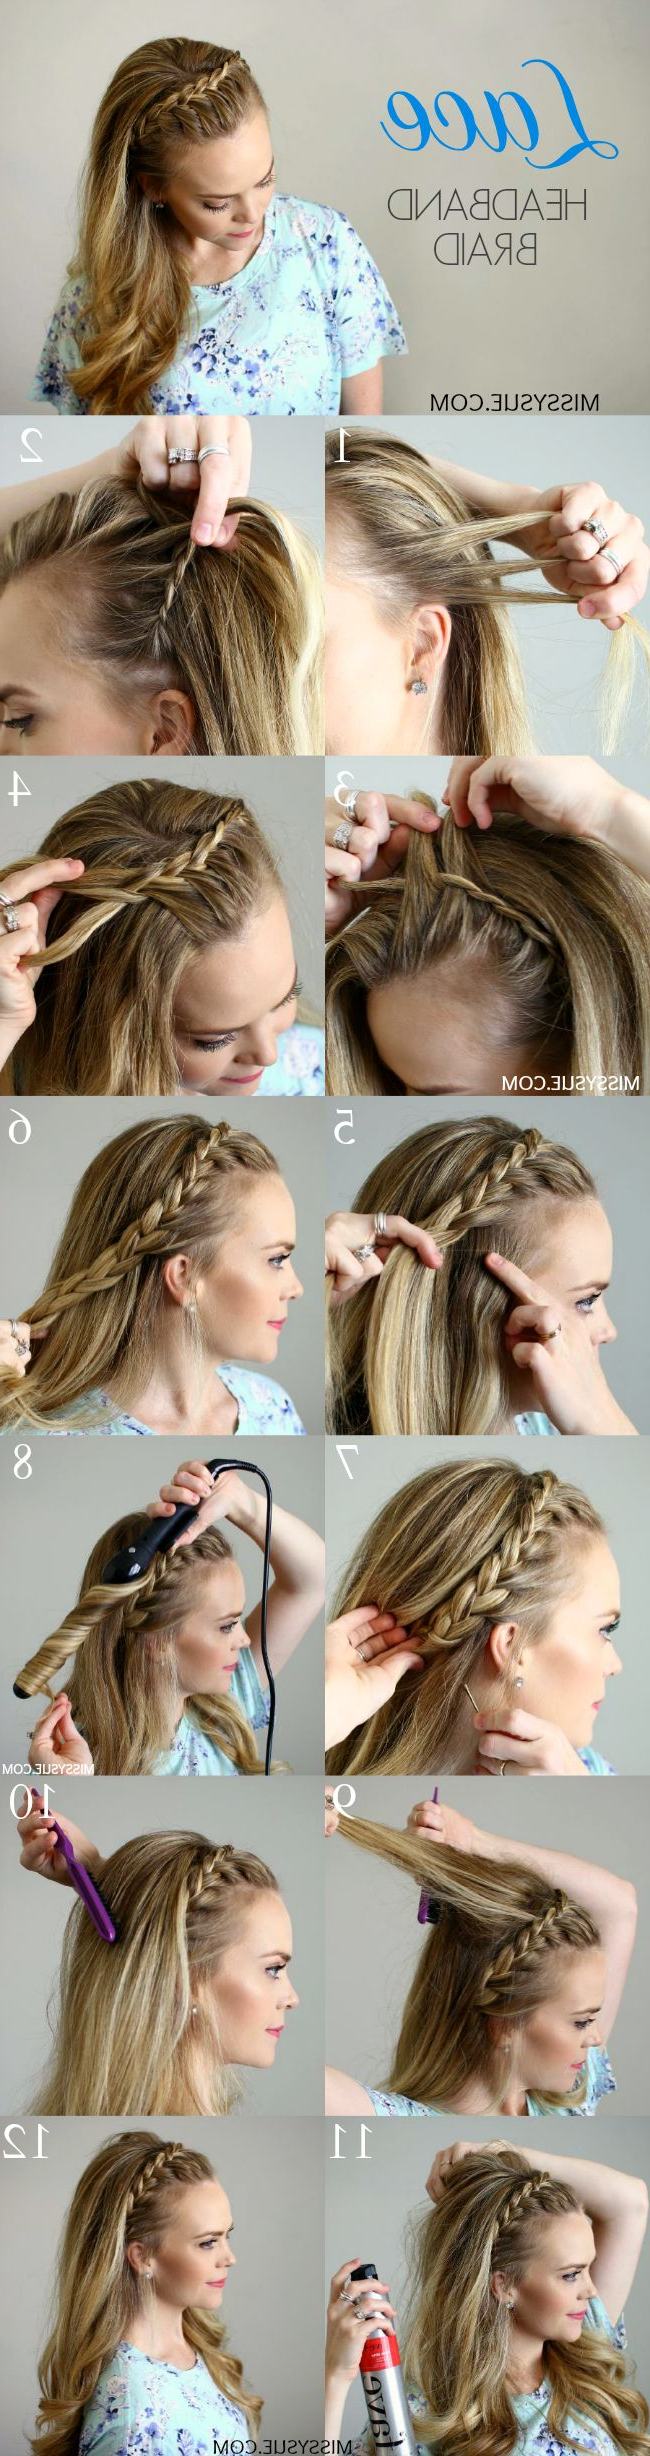 15 Stylish Mermaid Hairstyles To Pair Your Looks – Pretty Pertaining To Famous Mermaid Crown Braid Hairstyles (Gallery 9 of 20)